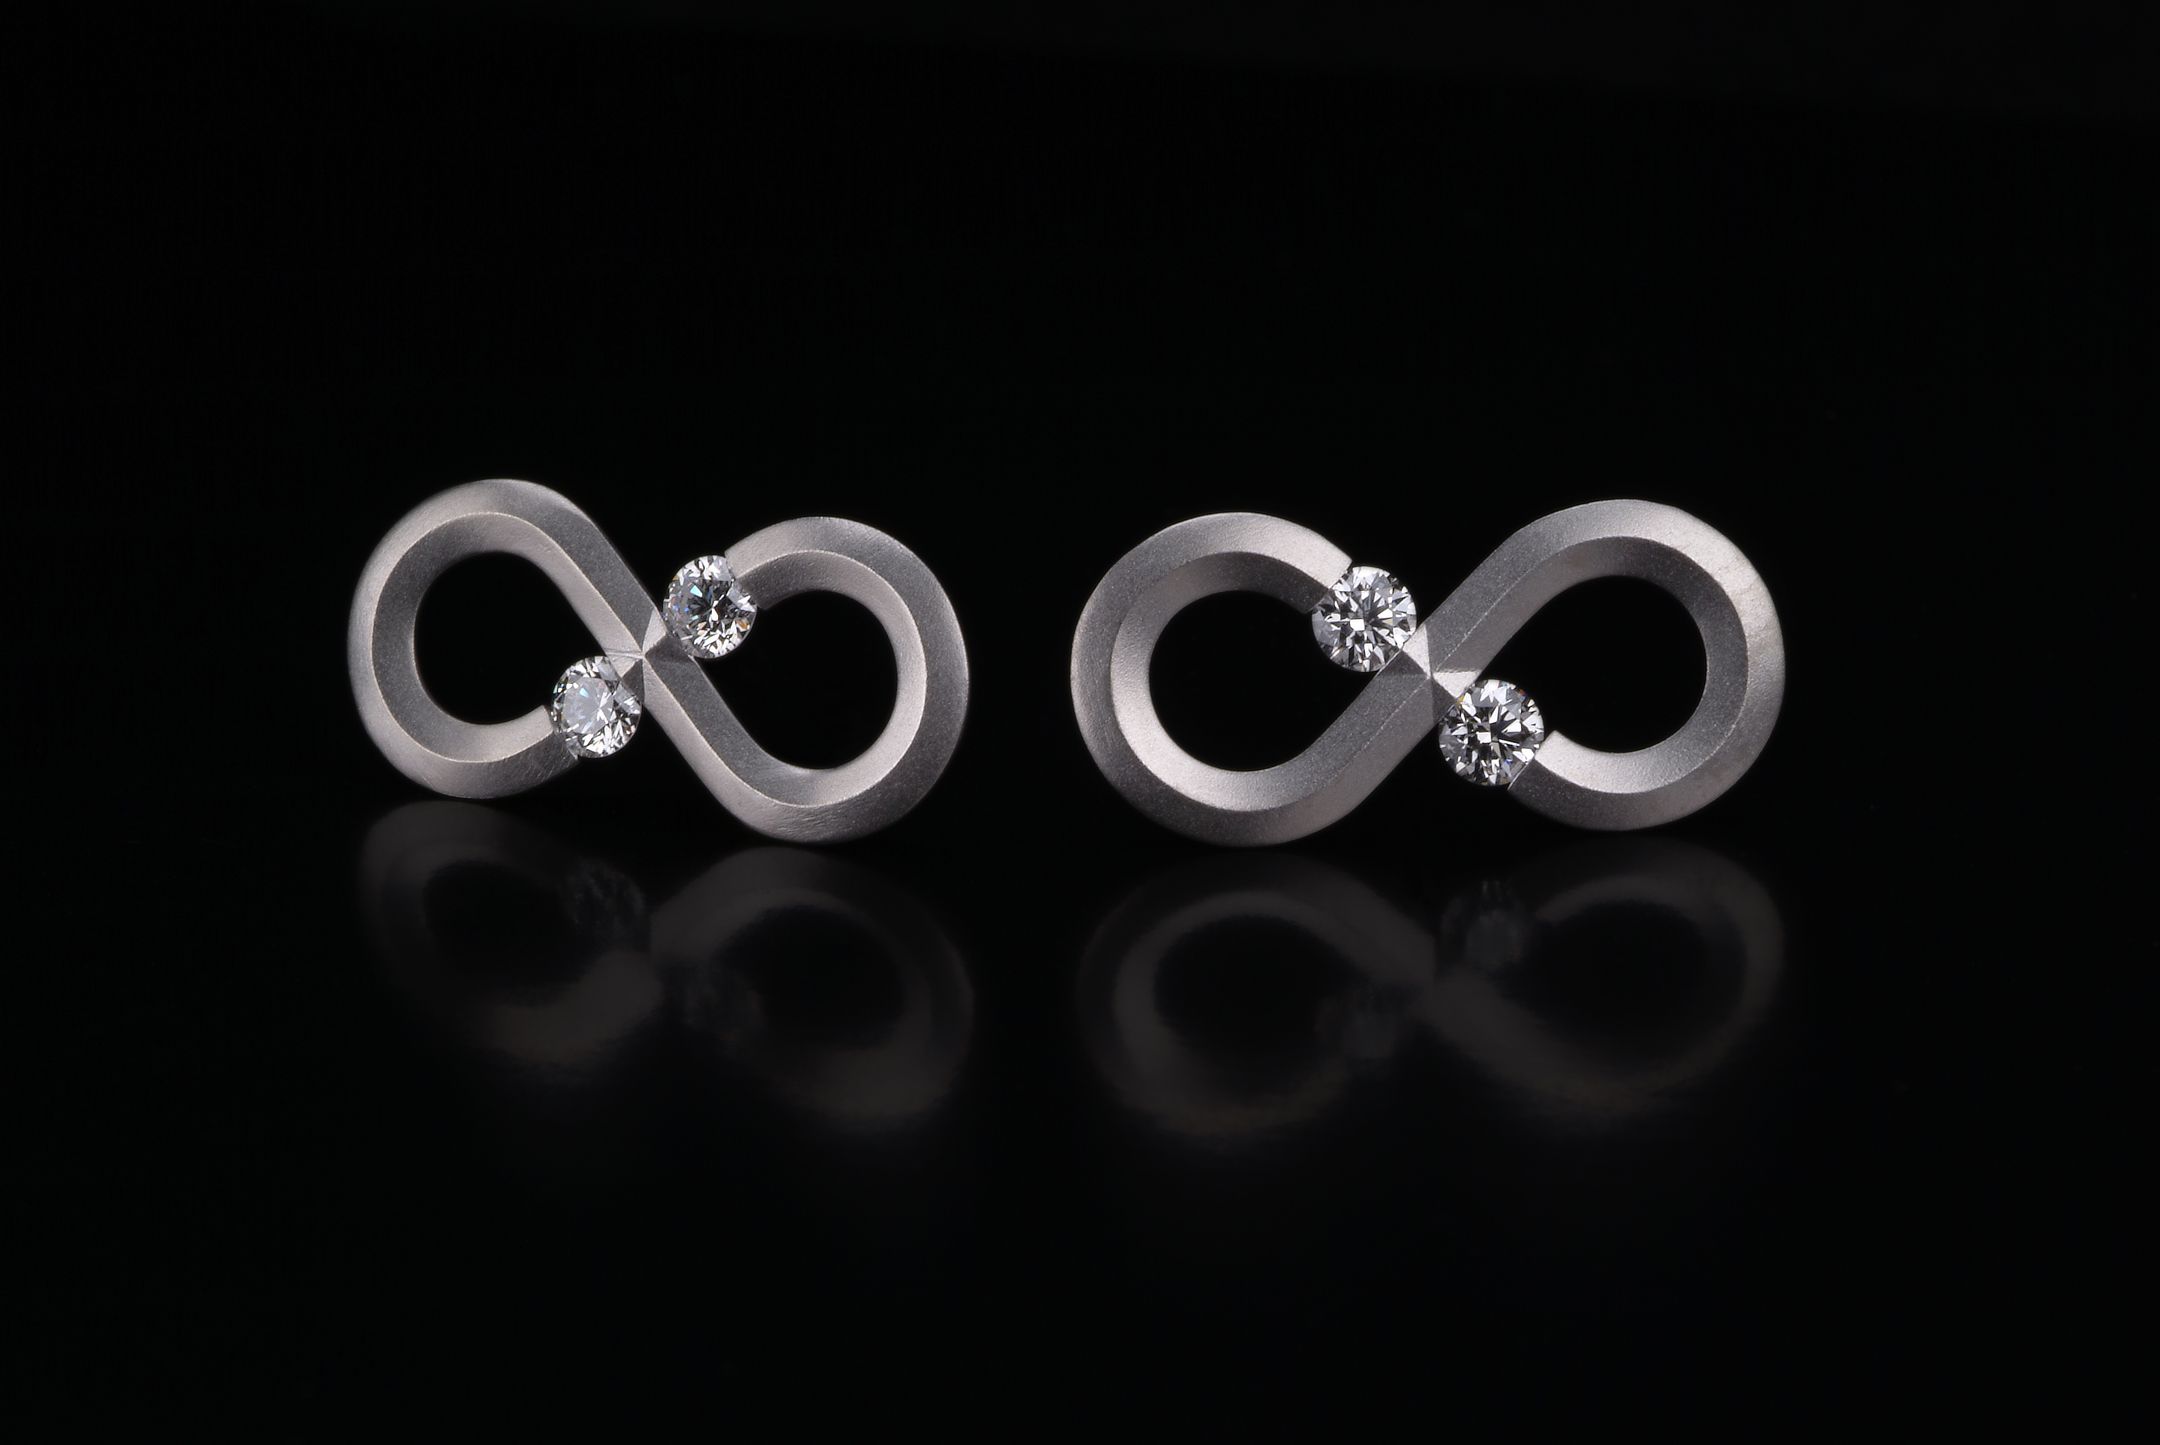 Steven Kretchmer Infinity Earrings